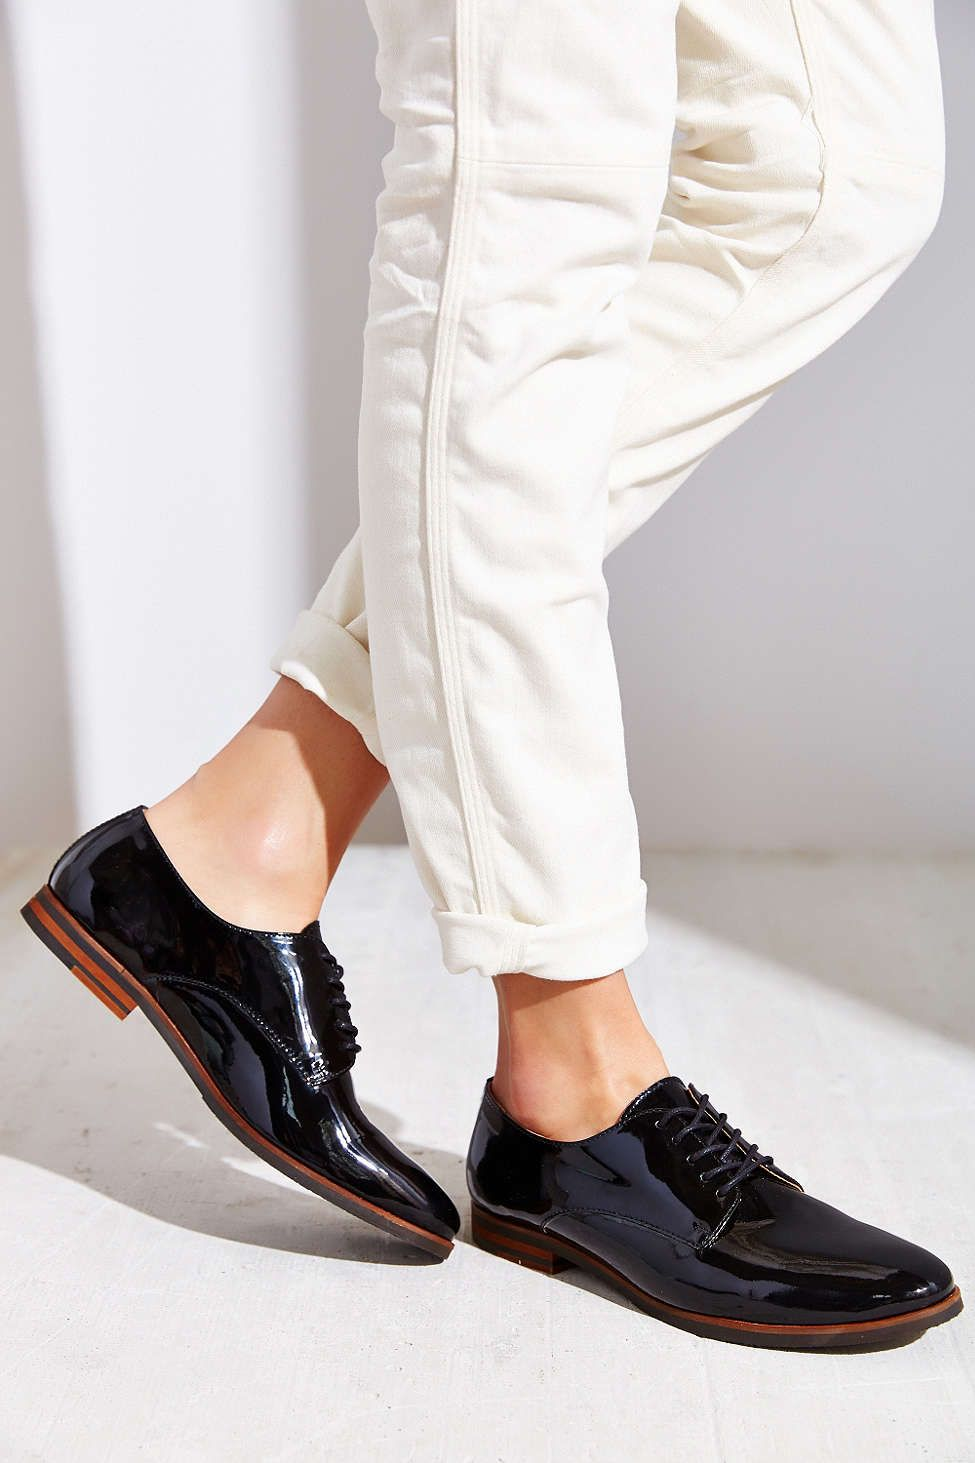 Original I Thought I Must Be In The Wrong Section Of Urban Outfitters  Shoes That Look Quite Conspiciously Like Mens Wingtips, Oxfords And Dress Shoes But I Wasnt! These Are, In Fact, Womens Shoes As Weve Reported Several Times This